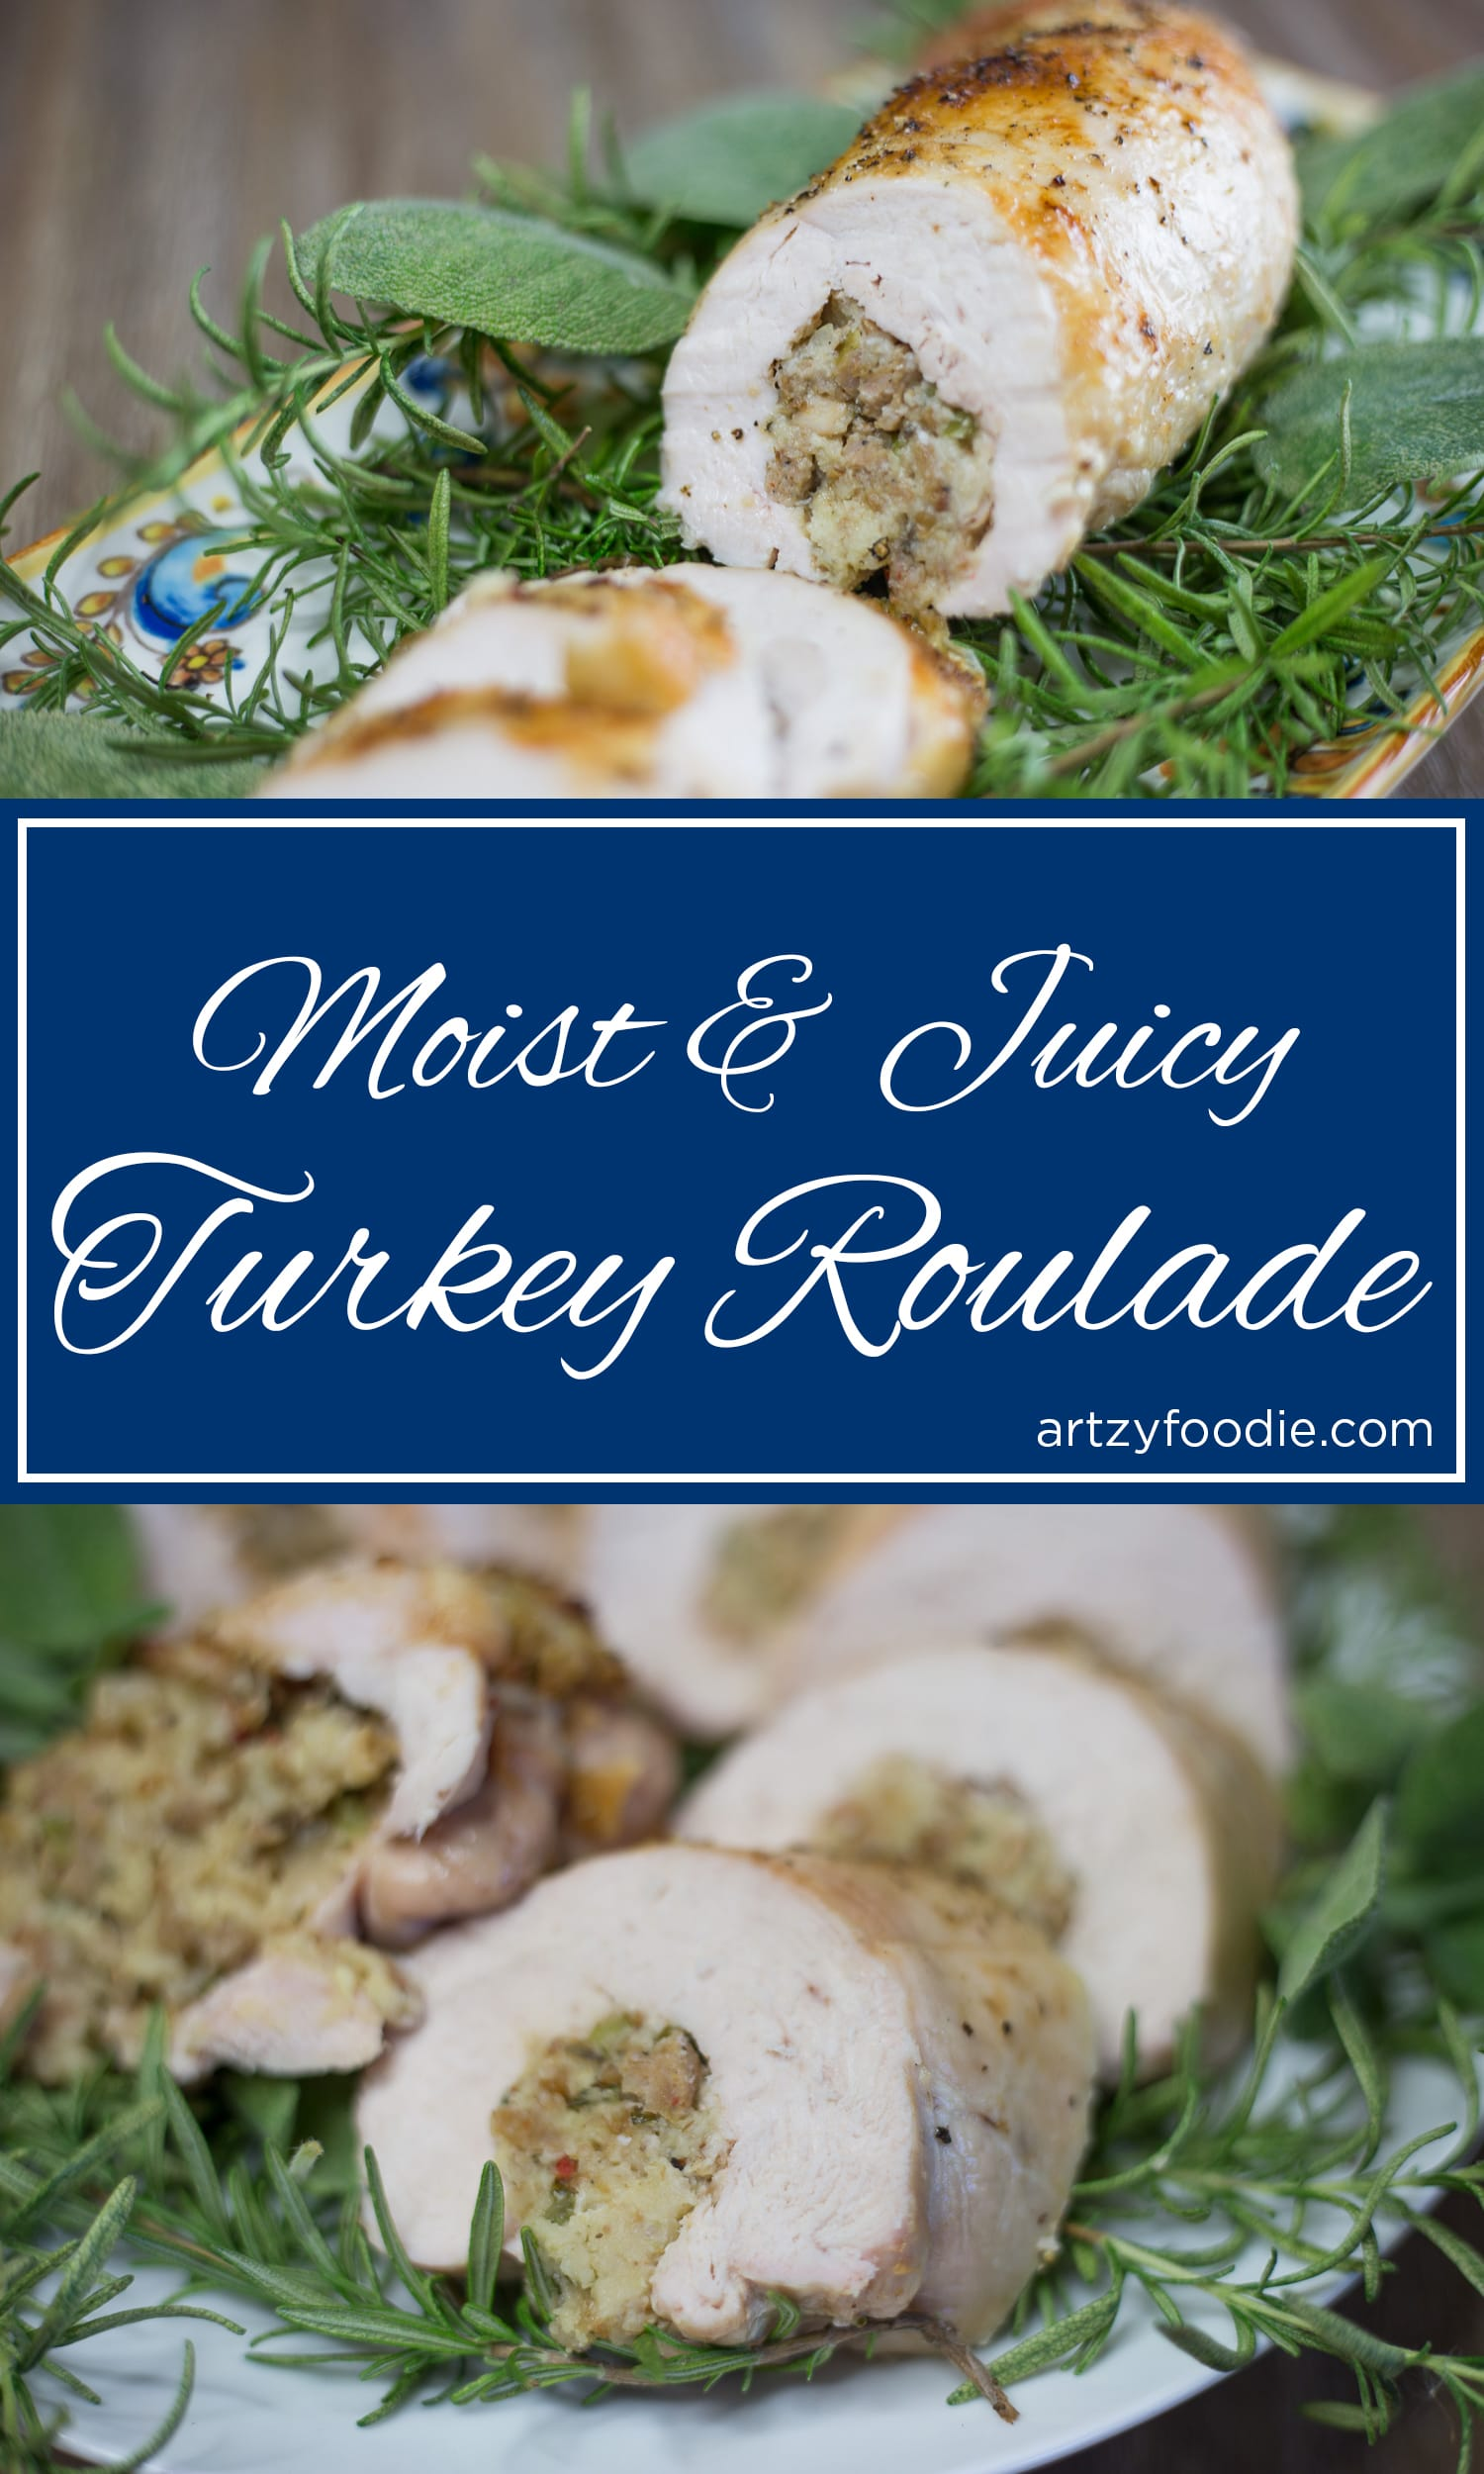 Turkey roulade, turkey breast stuffed with sausage and stuffing, is guaranteed to be moist every time! |artzyfoodie.com|